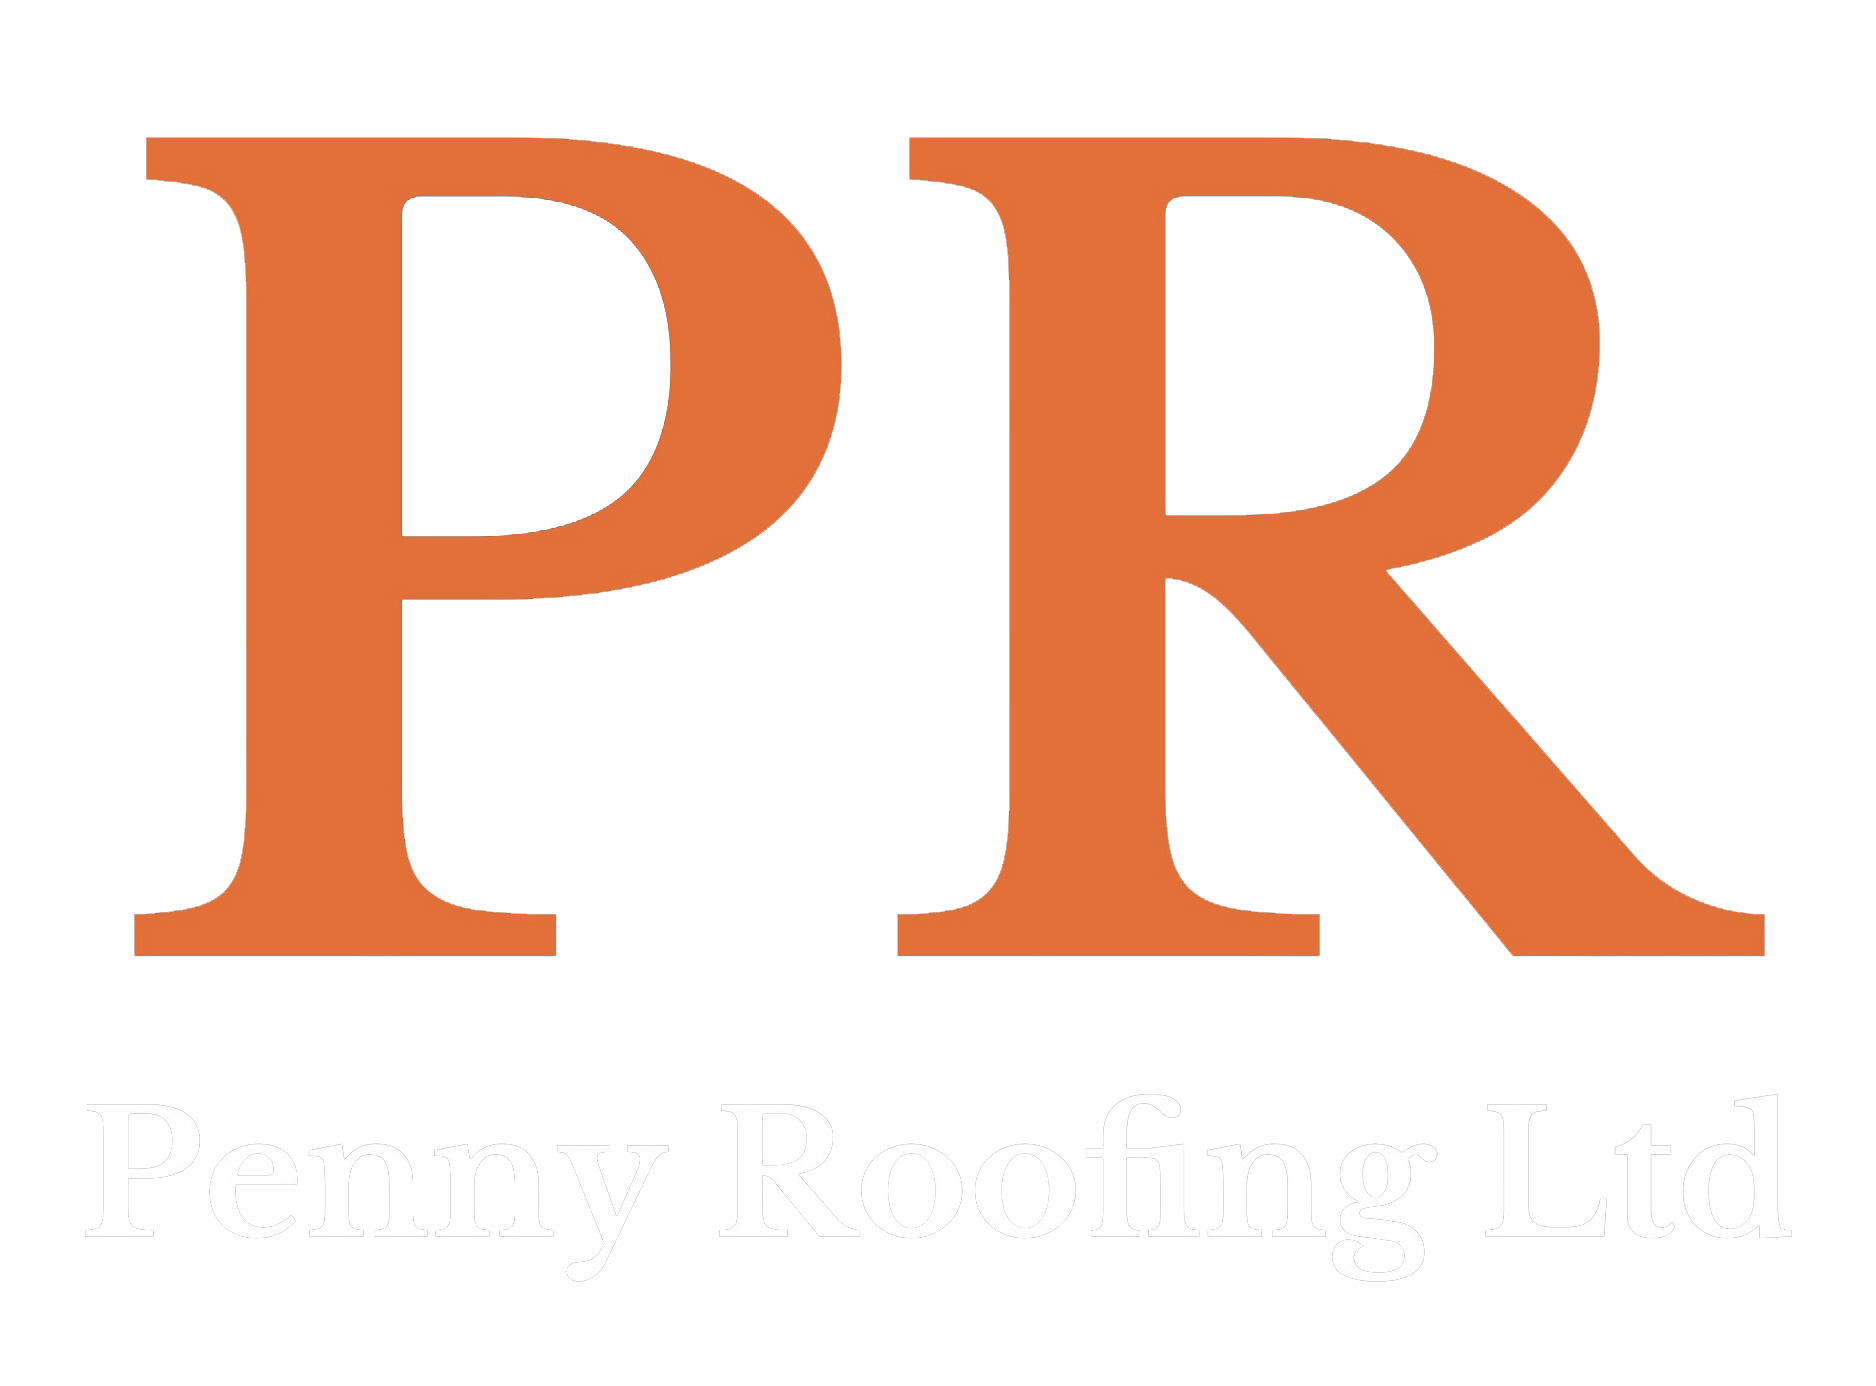 Penny Roofing